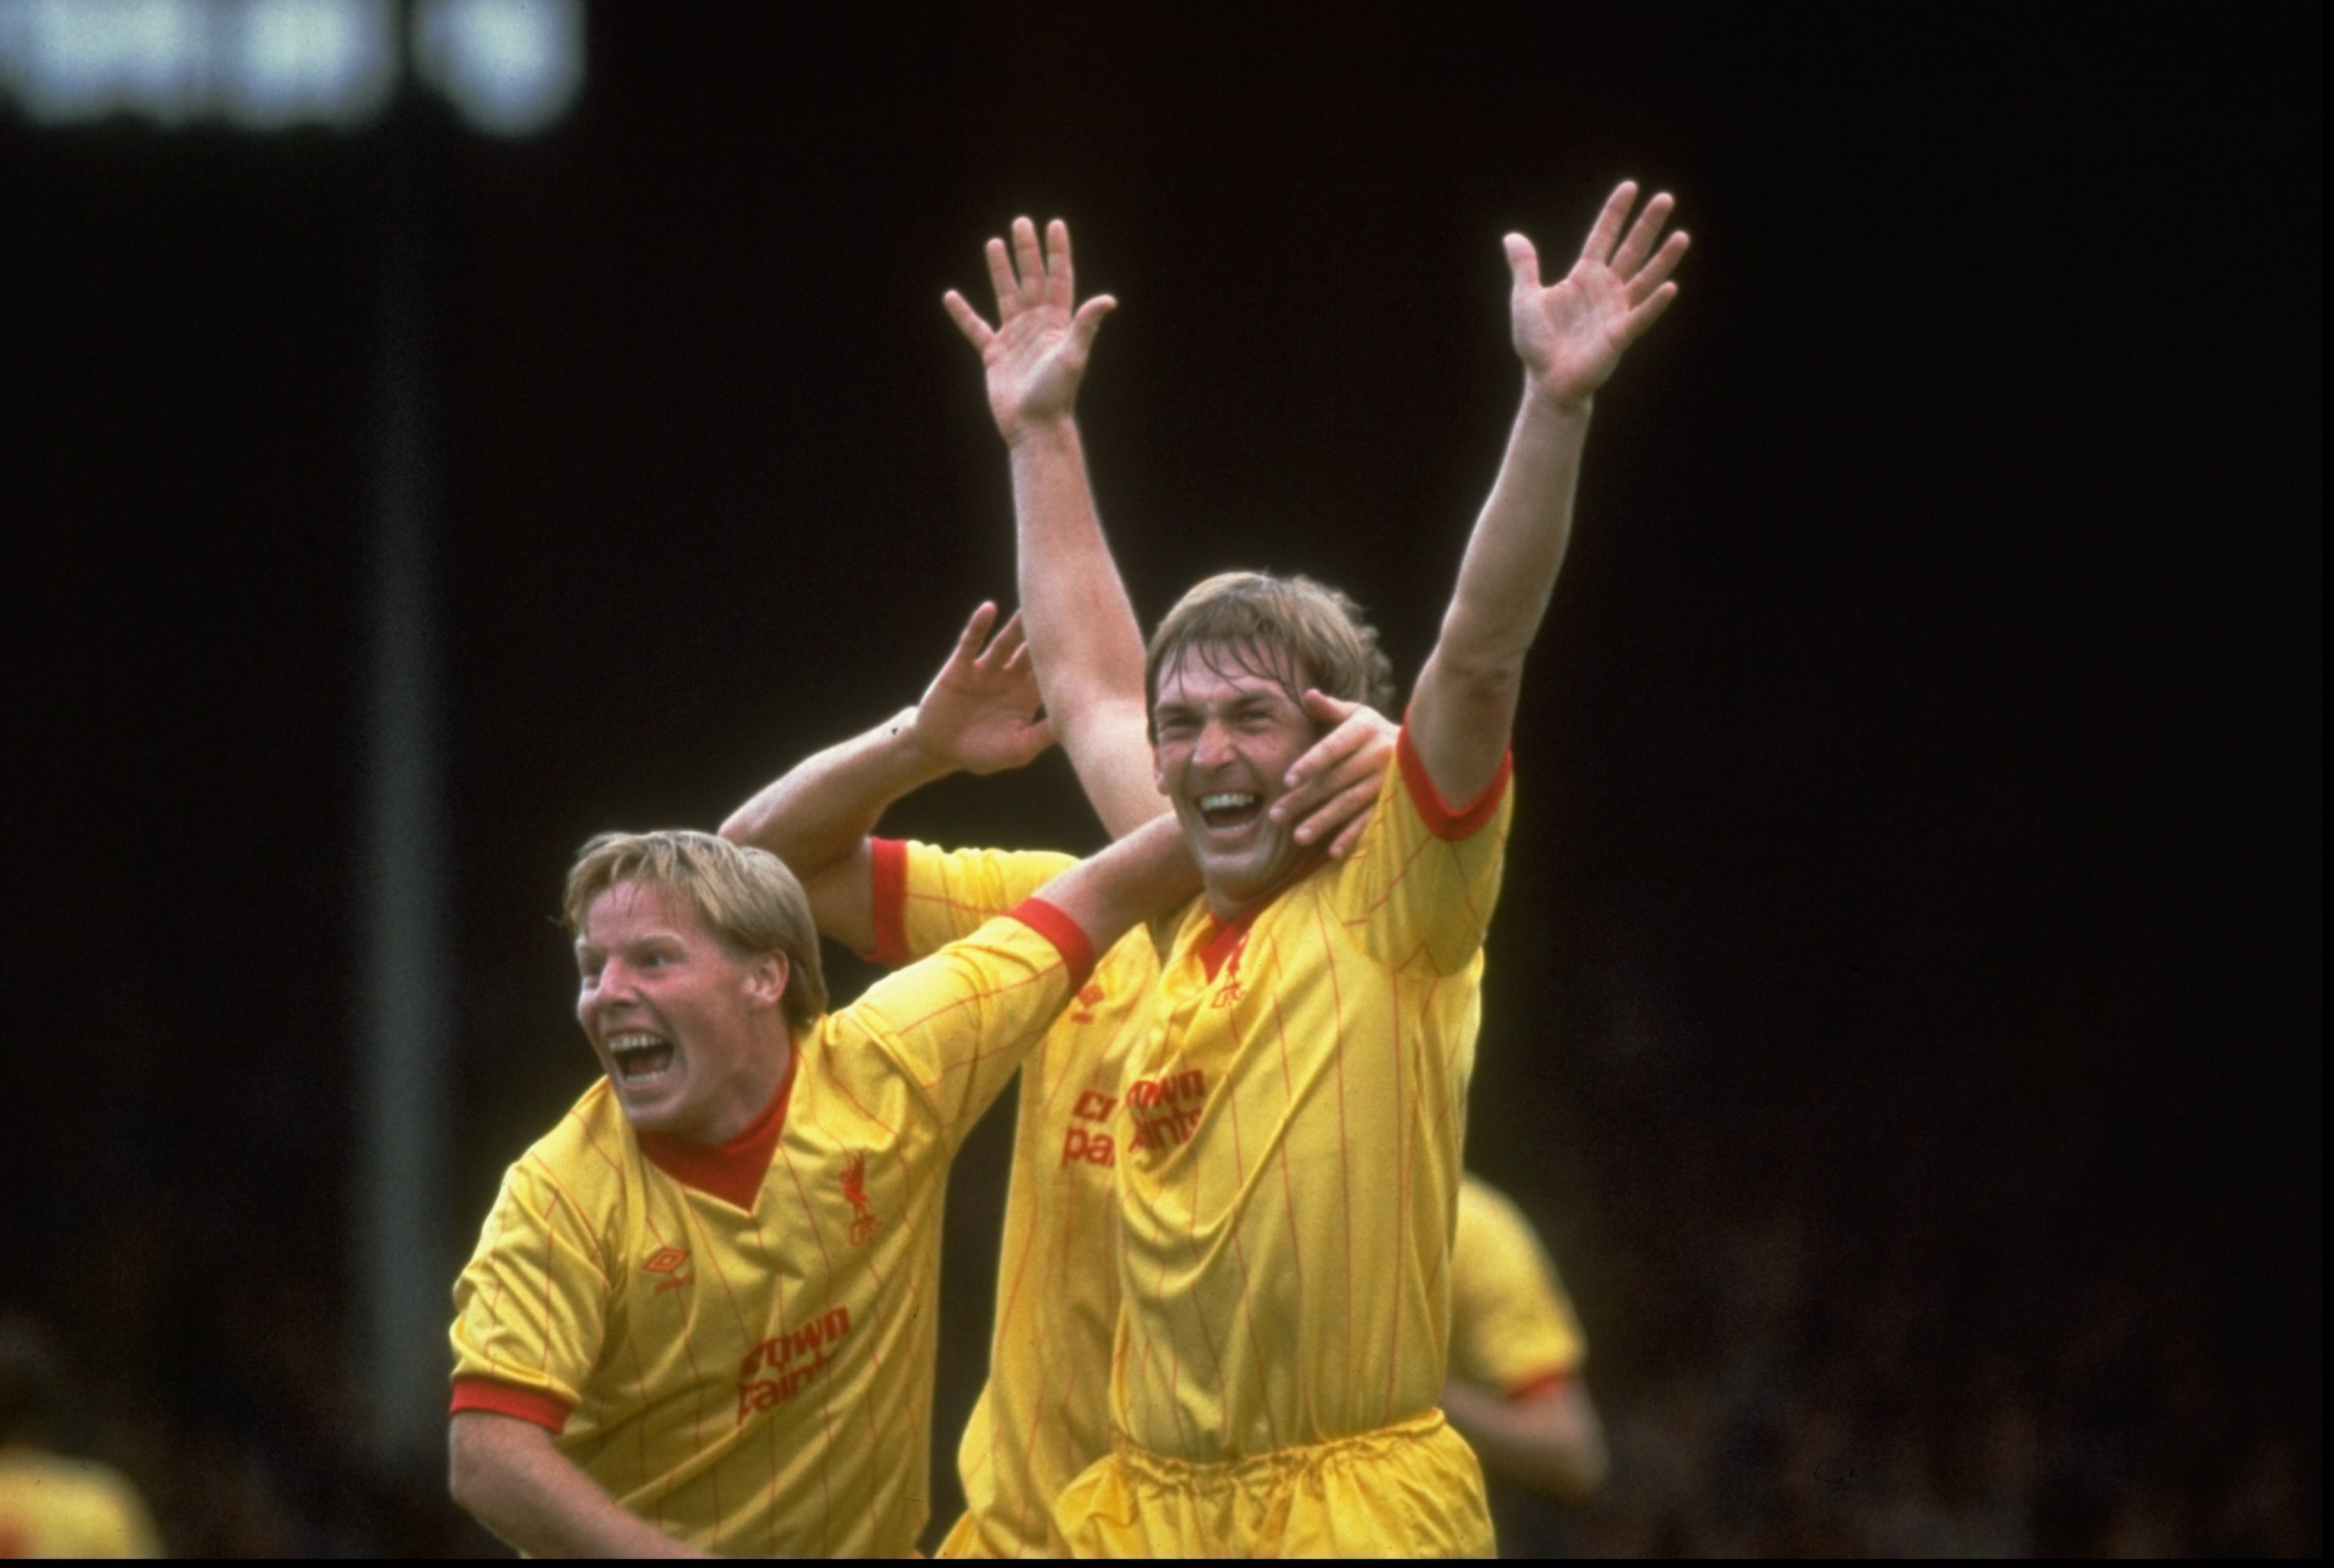 1983:  Sammy Lee (left) and Kenny Dalglish (right) of Liverpool celebrate Dalglish's goal during the Division One match against Arsenal at Highbury in London. \ Mandatory Credit: Allsport UK /Allsport